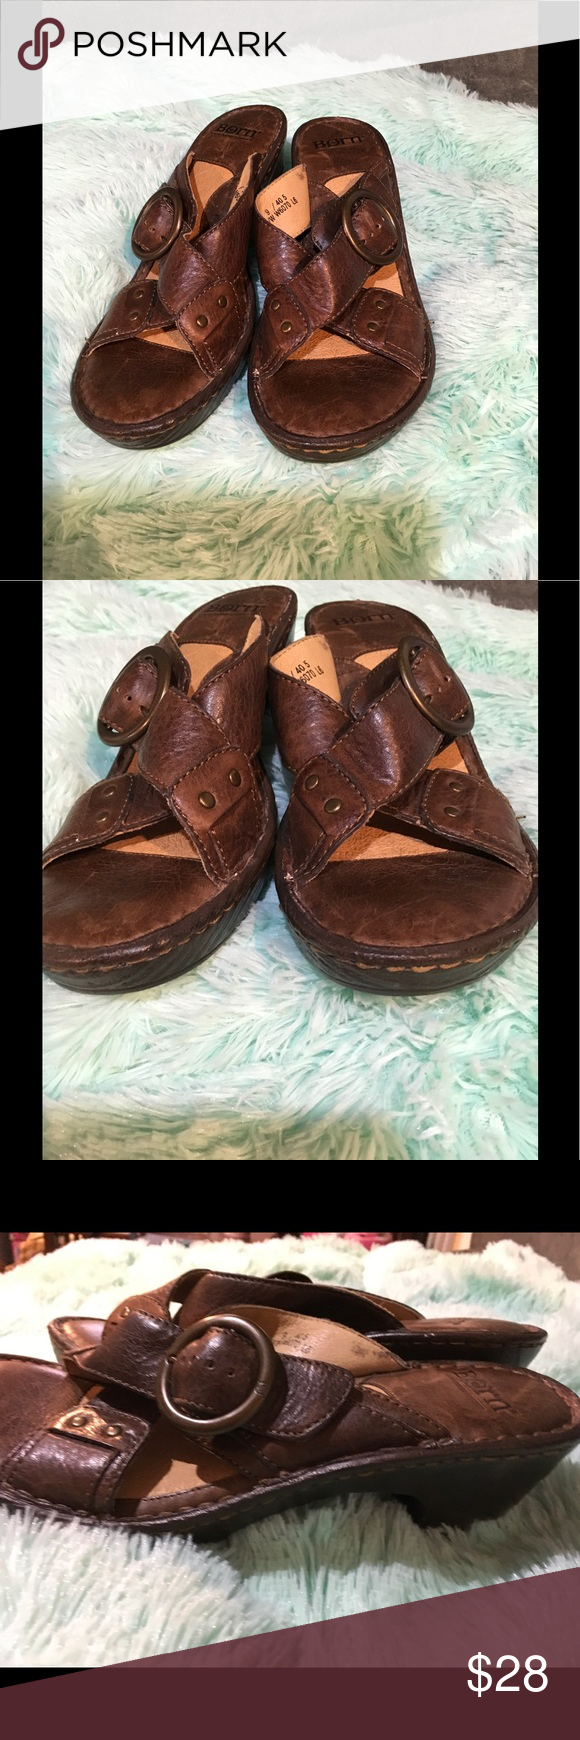 Born leather sandals Sz 8.5-9 Great shoes! Comfy and adjustable strap. Sz 9 but can fit 8.5 imo. These have no wear on the bottom. Really nice condition. Please make offers through the offer option not comment, ty. Born Shoes Mules & Clogs